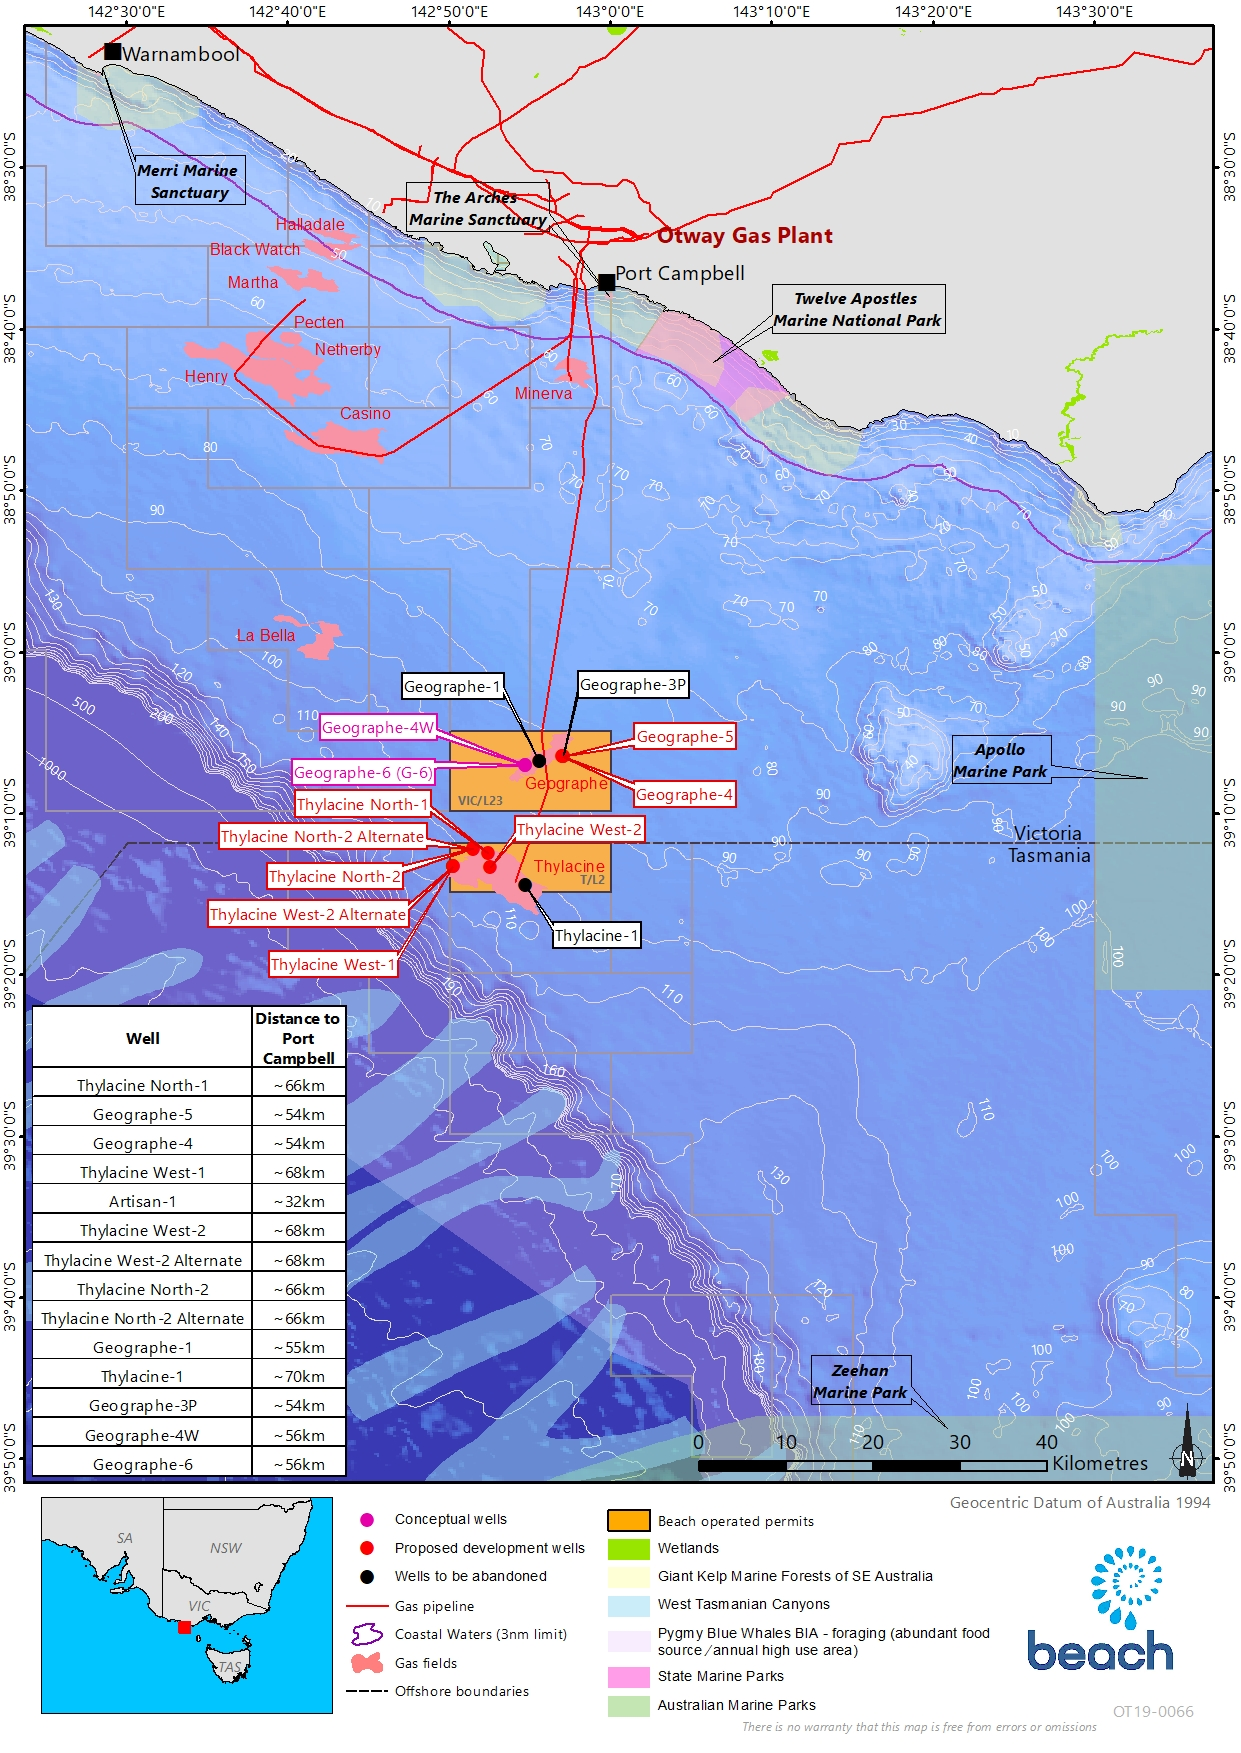 Location map - Activity: Otway Development Drilling and Well Abandonment (refer to description)